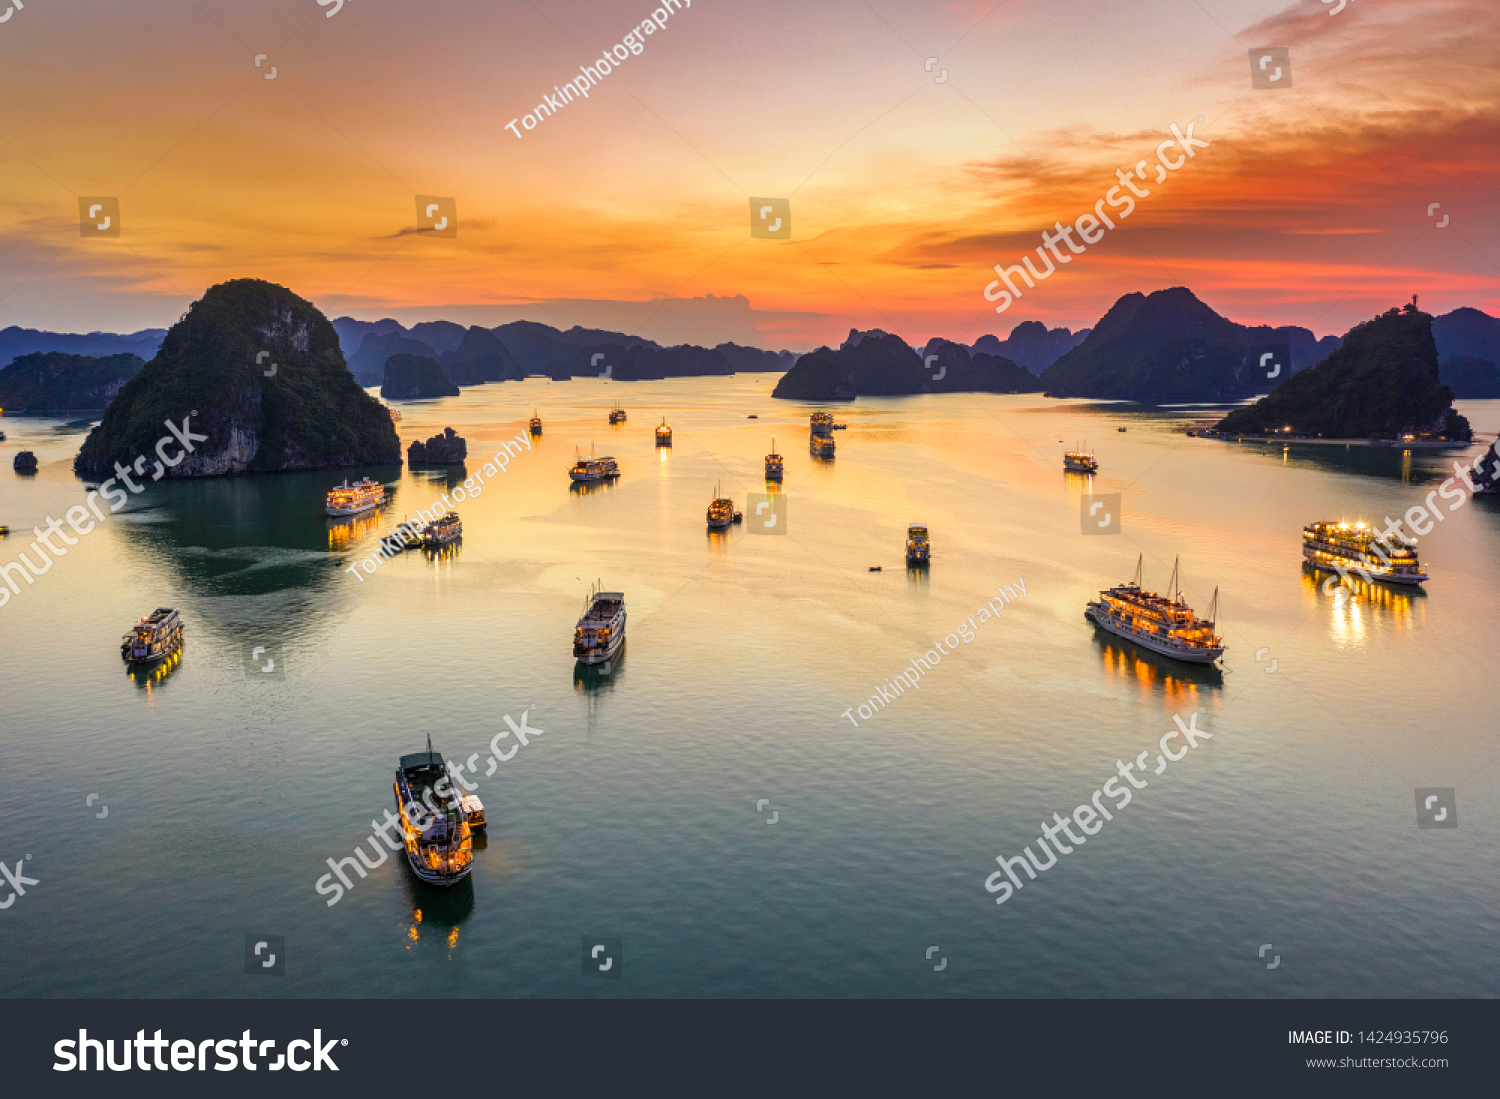 Aerial view of sunset and dawn near rock island, Halong Bay, Vietnam, Southeast Asia. UNESCO World Heritage Site. Junk boat cruise to Ha Long Bay. Popular landmark, famous destination of Vietnam #1424935796